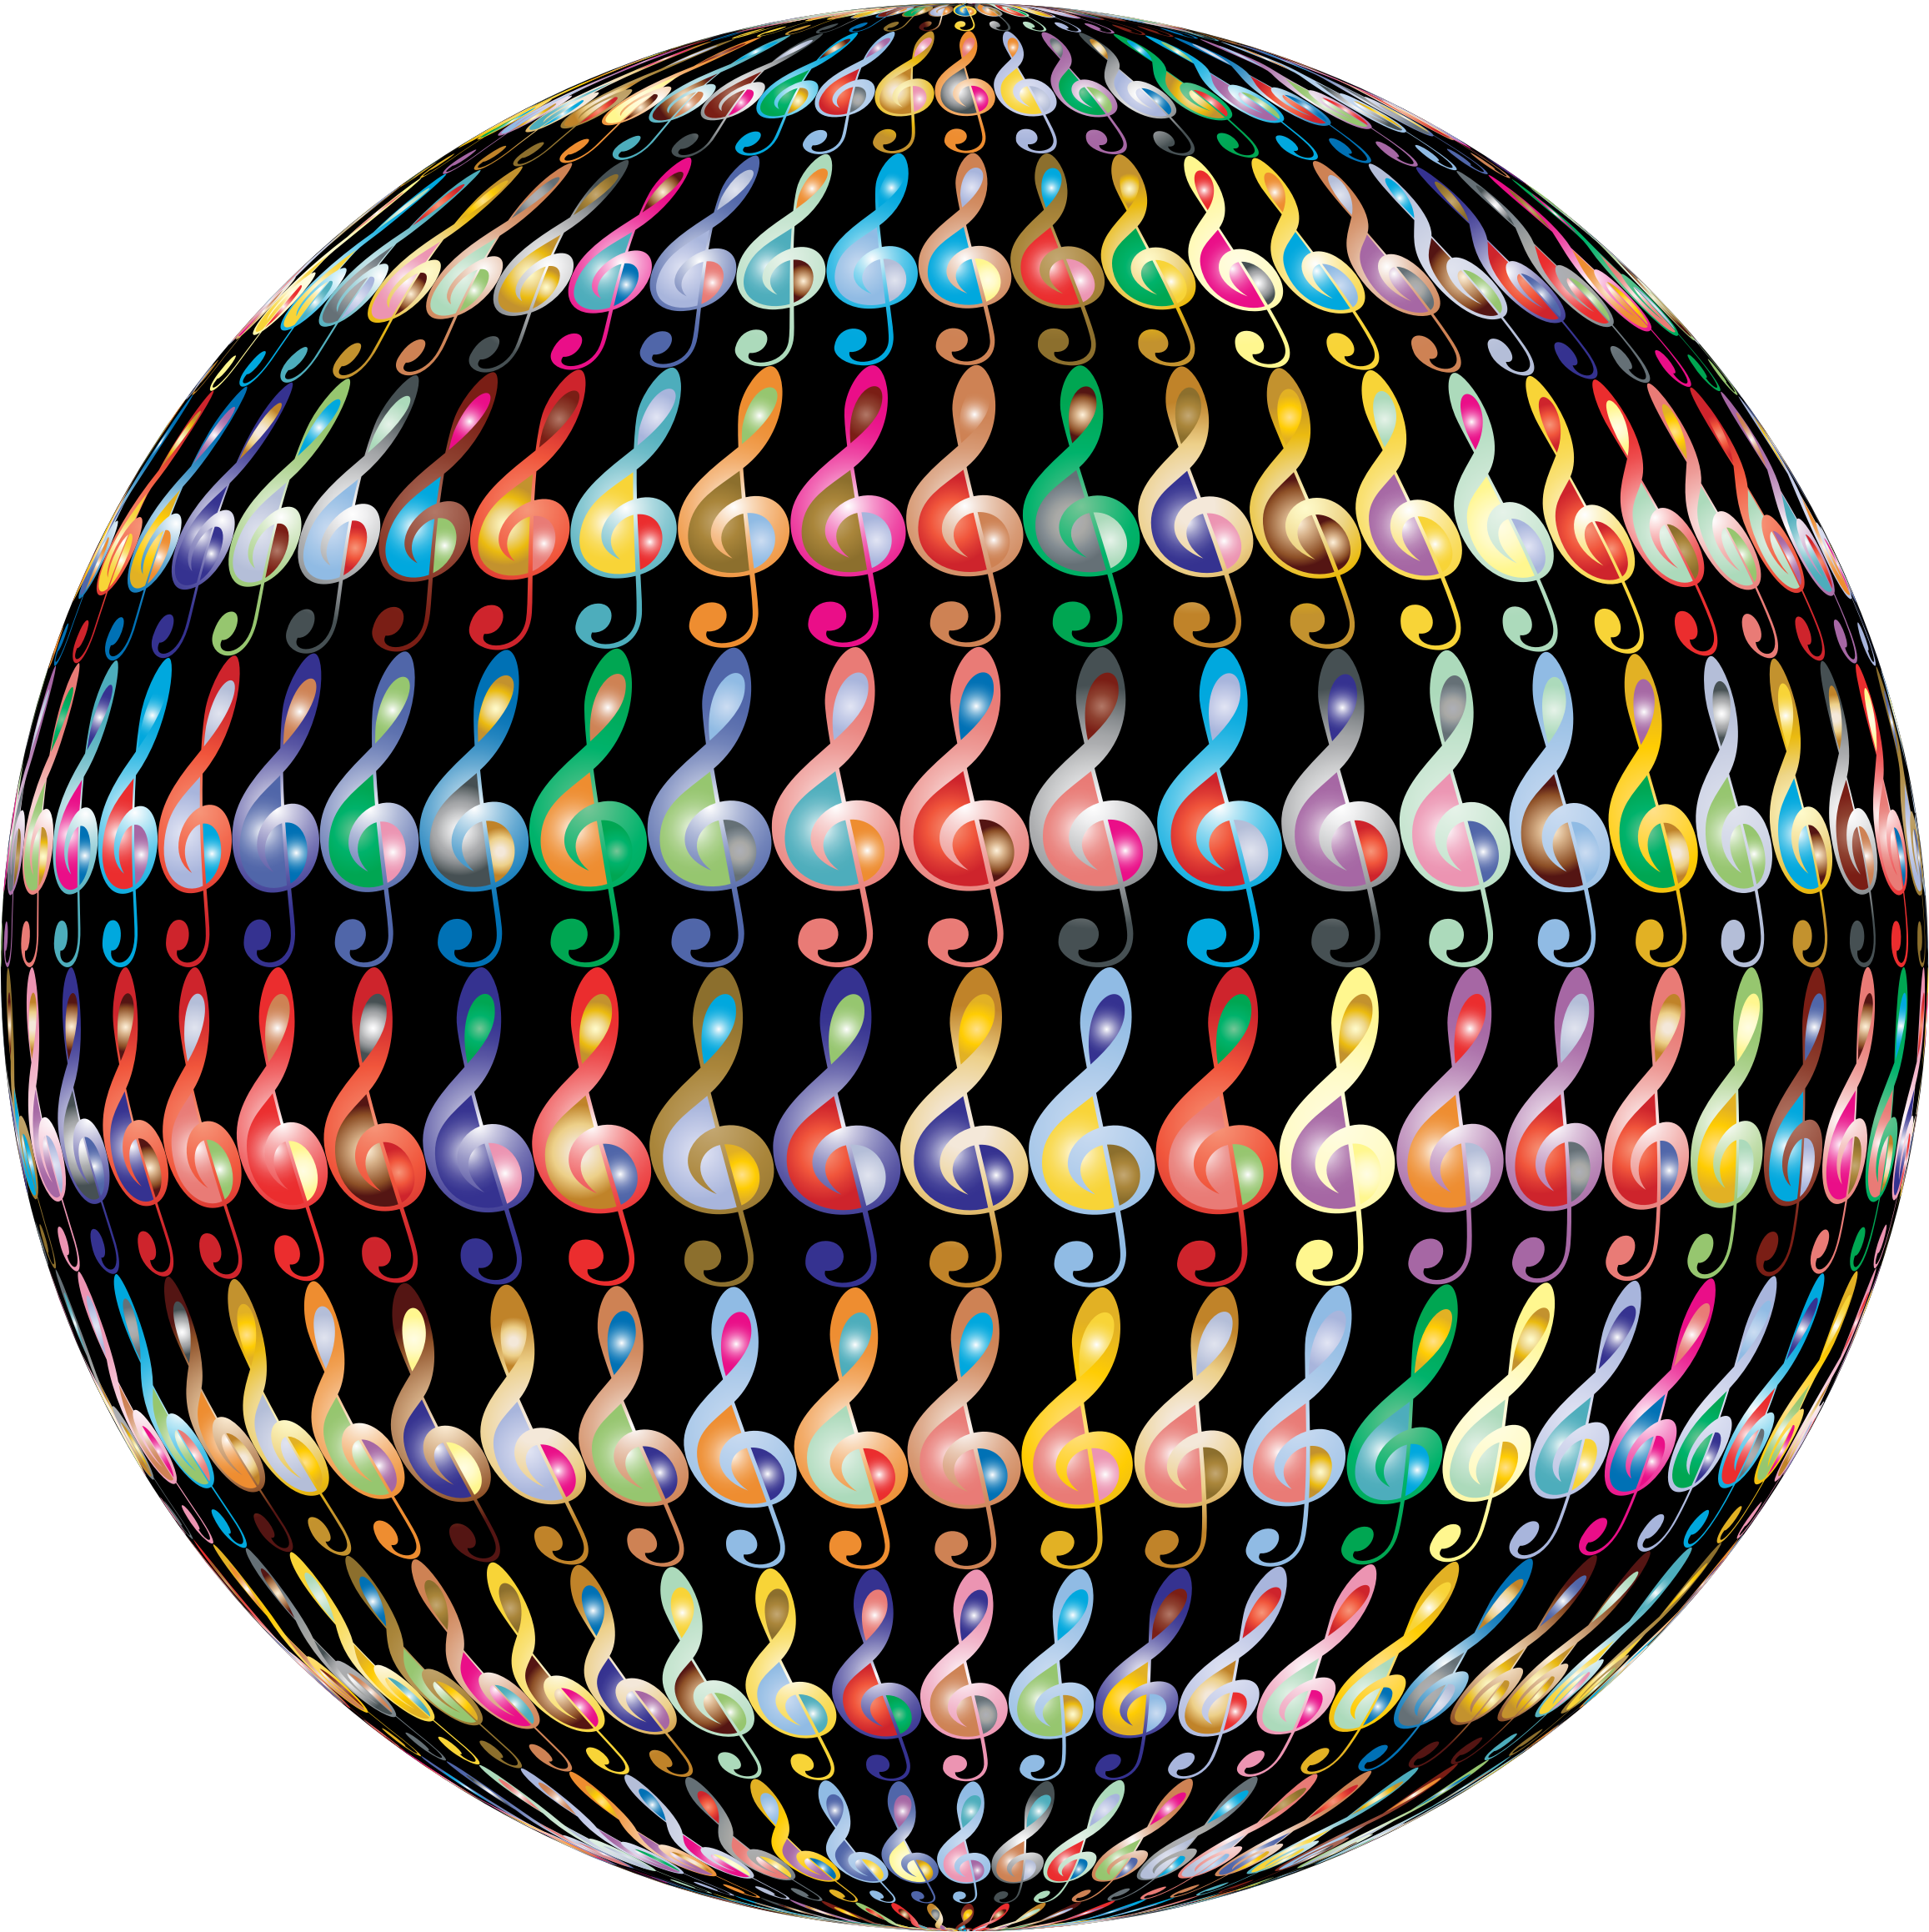 Clef Sphere Prismatic 2 With BG by GDJ